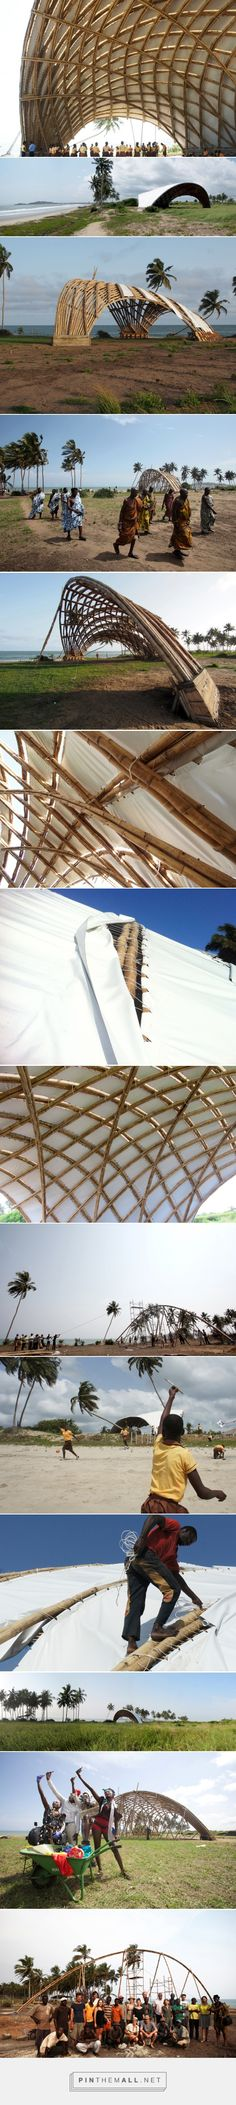 haduwa arts + culture institute in ghana protected by dynamic bamboo canopy - created via https://pinthemall.net